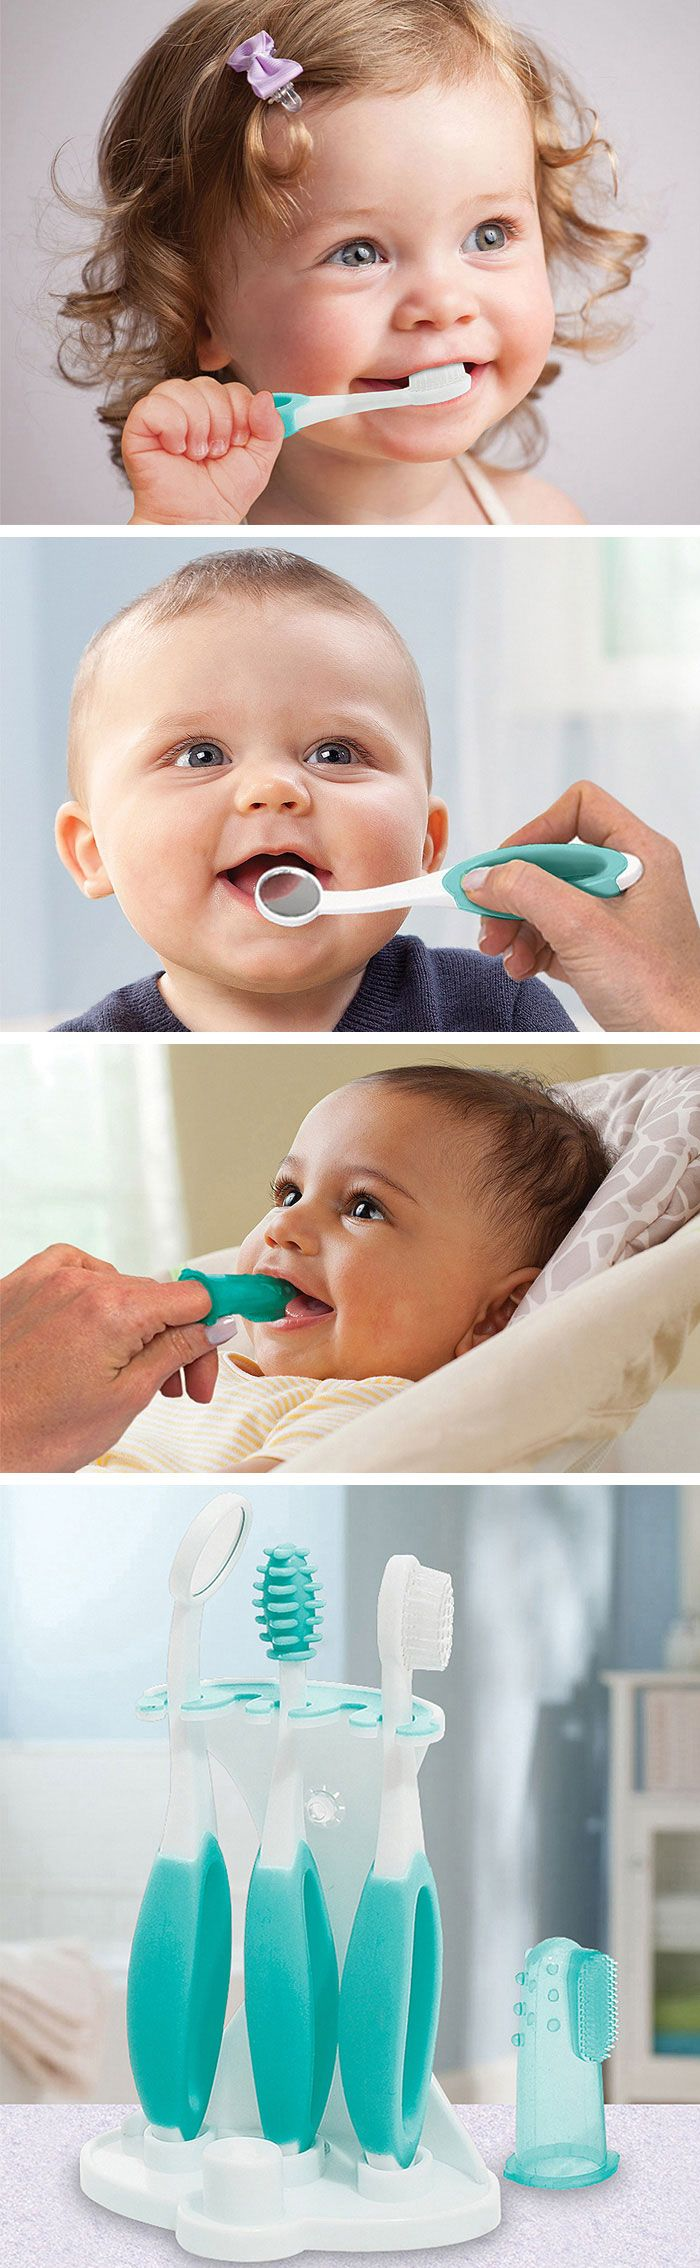 Infant oral care set - everything you need from 6 months to 2 years including, toothbrush, mirror etc. #baby #product_design